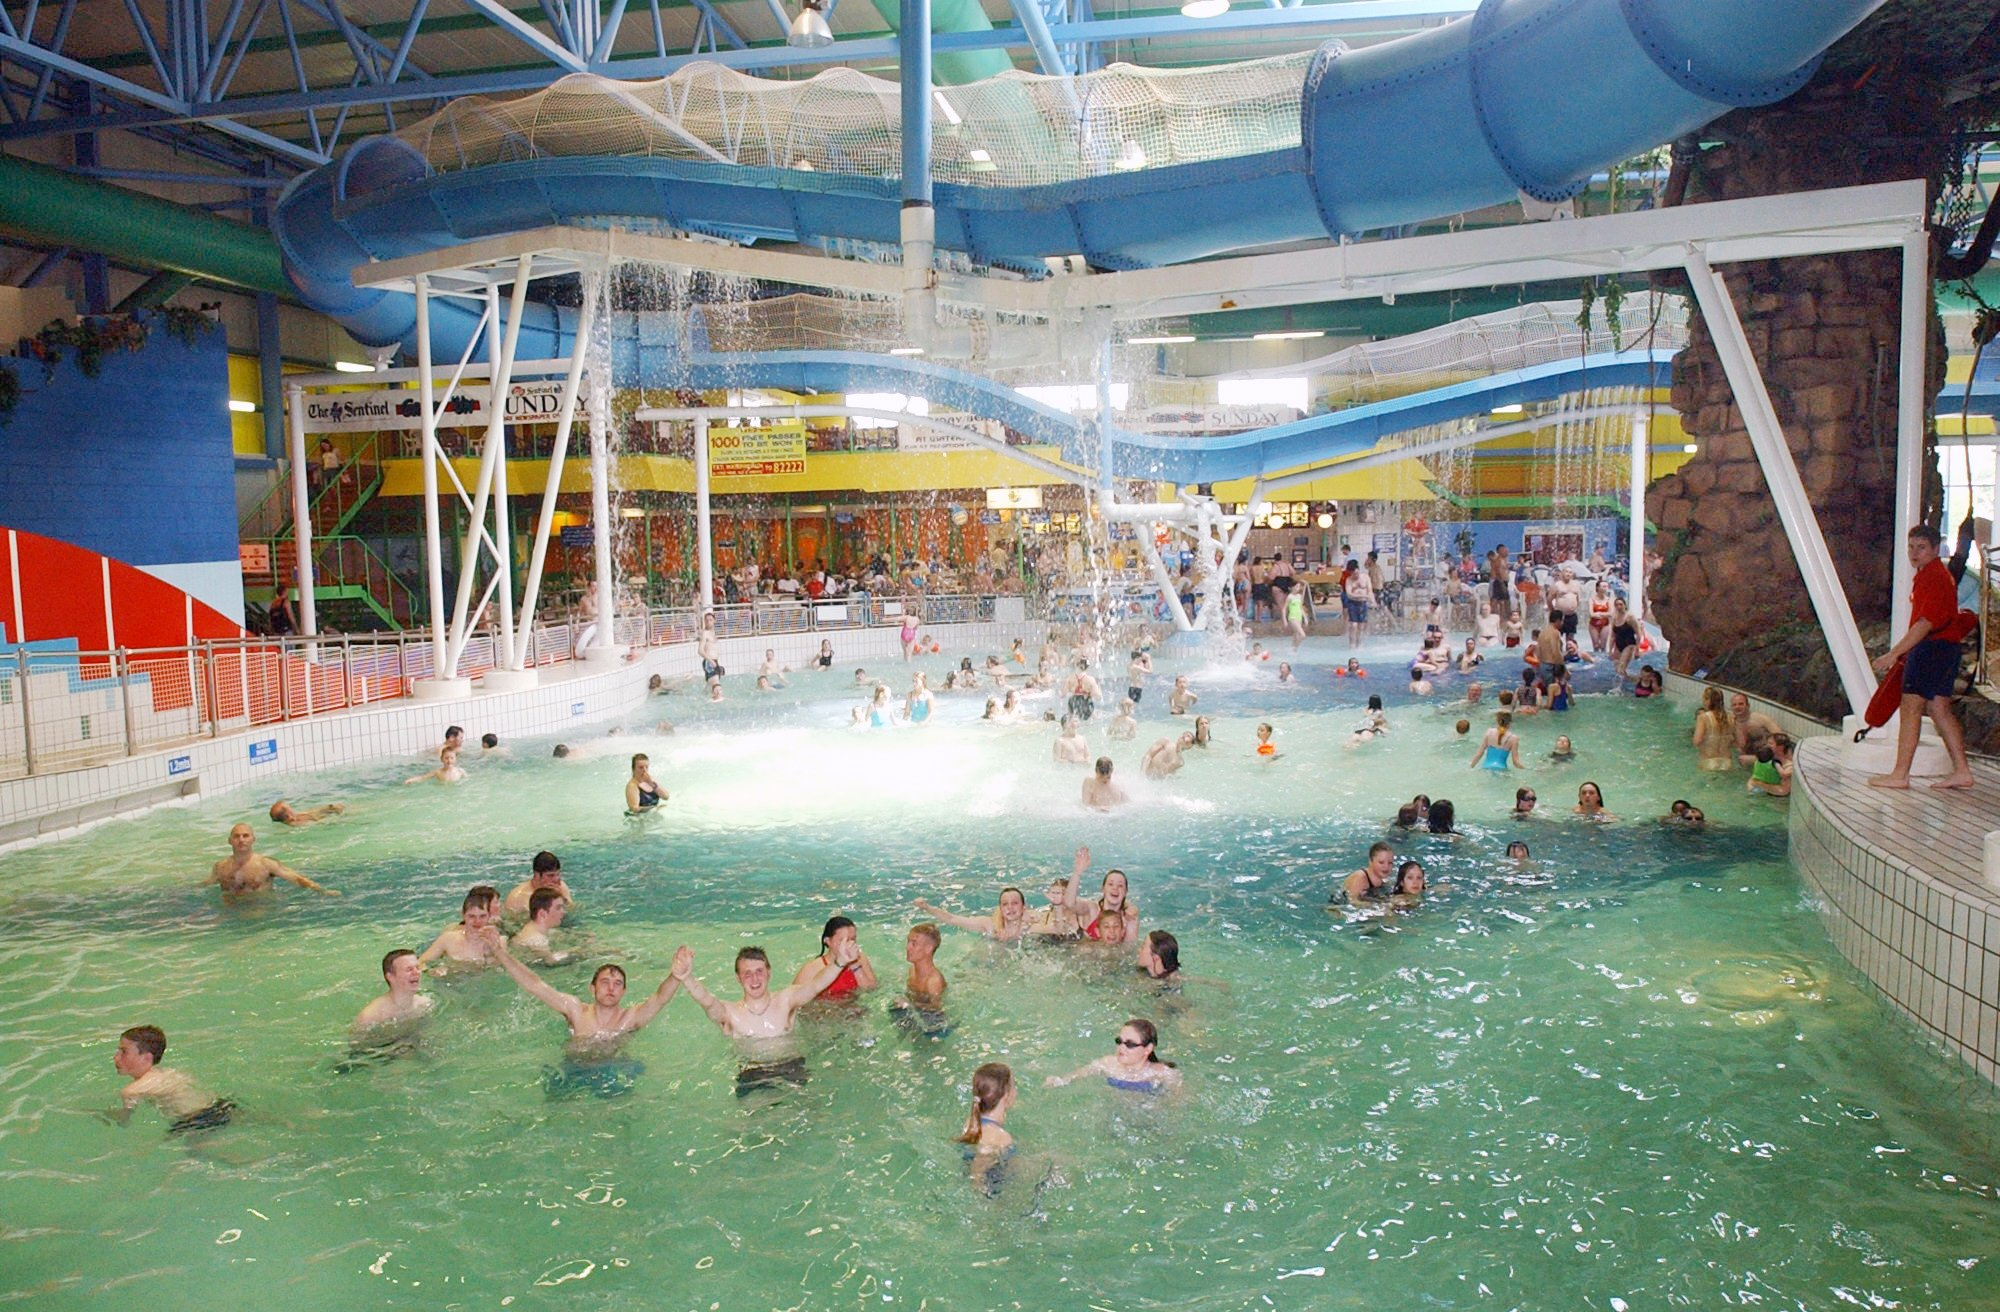 The owner a water park which is set to hold a nude family swim session has labelled criticism that the event could attract sex offenders as 'scaremongering'. Mo Chaudry said Waterworld in Stroke-on-Trent, Staffordshire, had been 'unjustly accused of encouraging paedophiles'. Caption: Waterworld in Stroke-on-Trent, Staffordshire